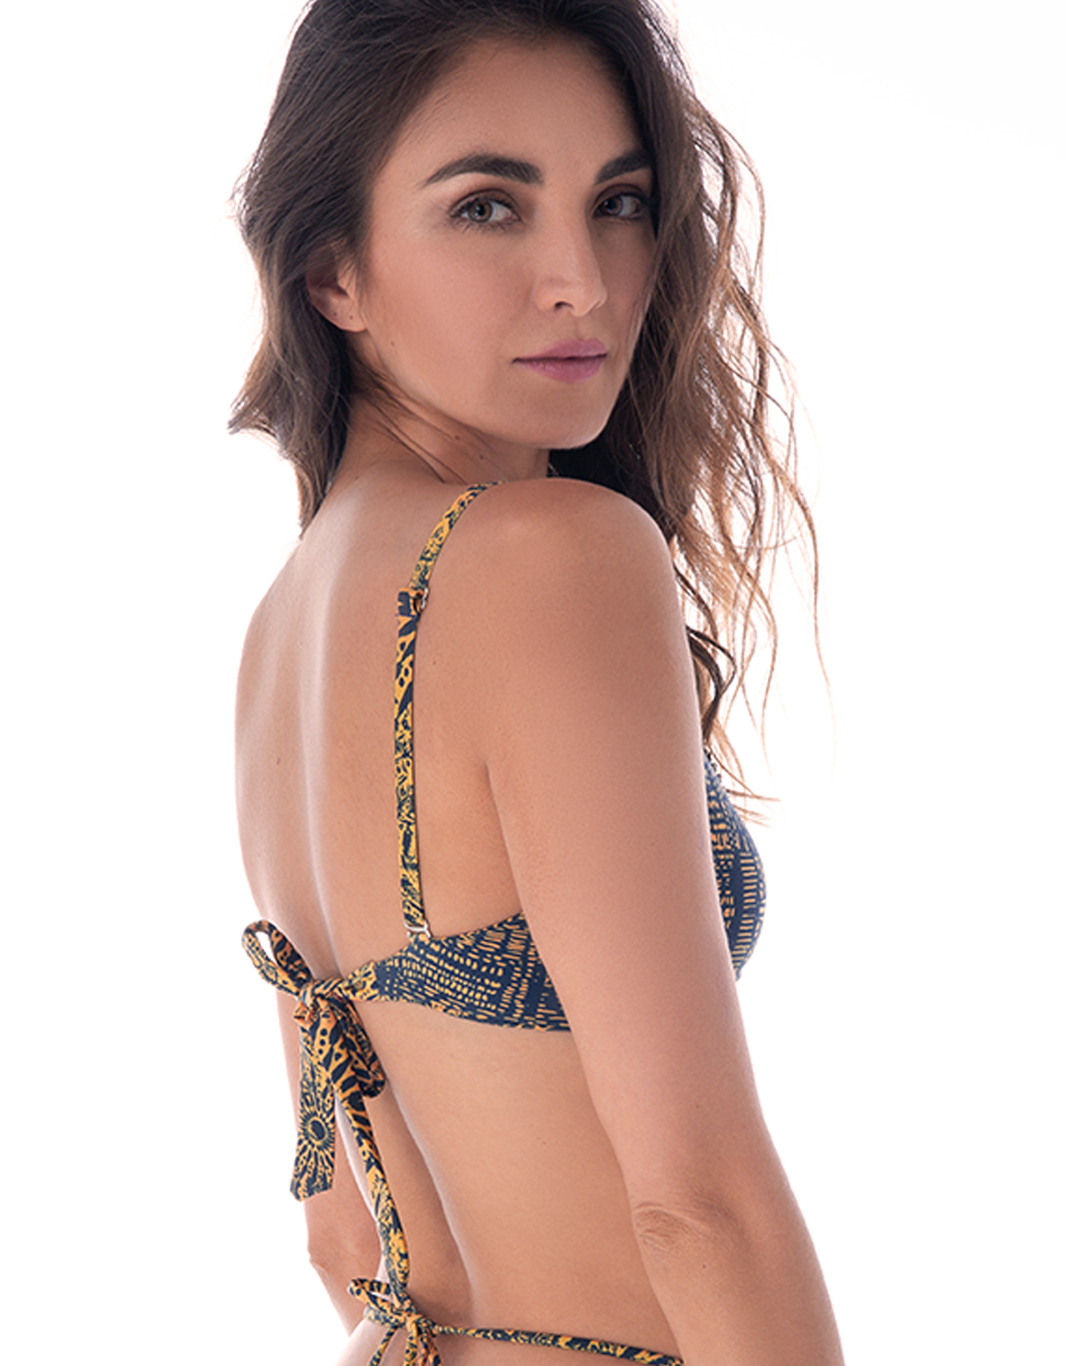 Mar Sole Halter Bikini Top - Eco Fabric